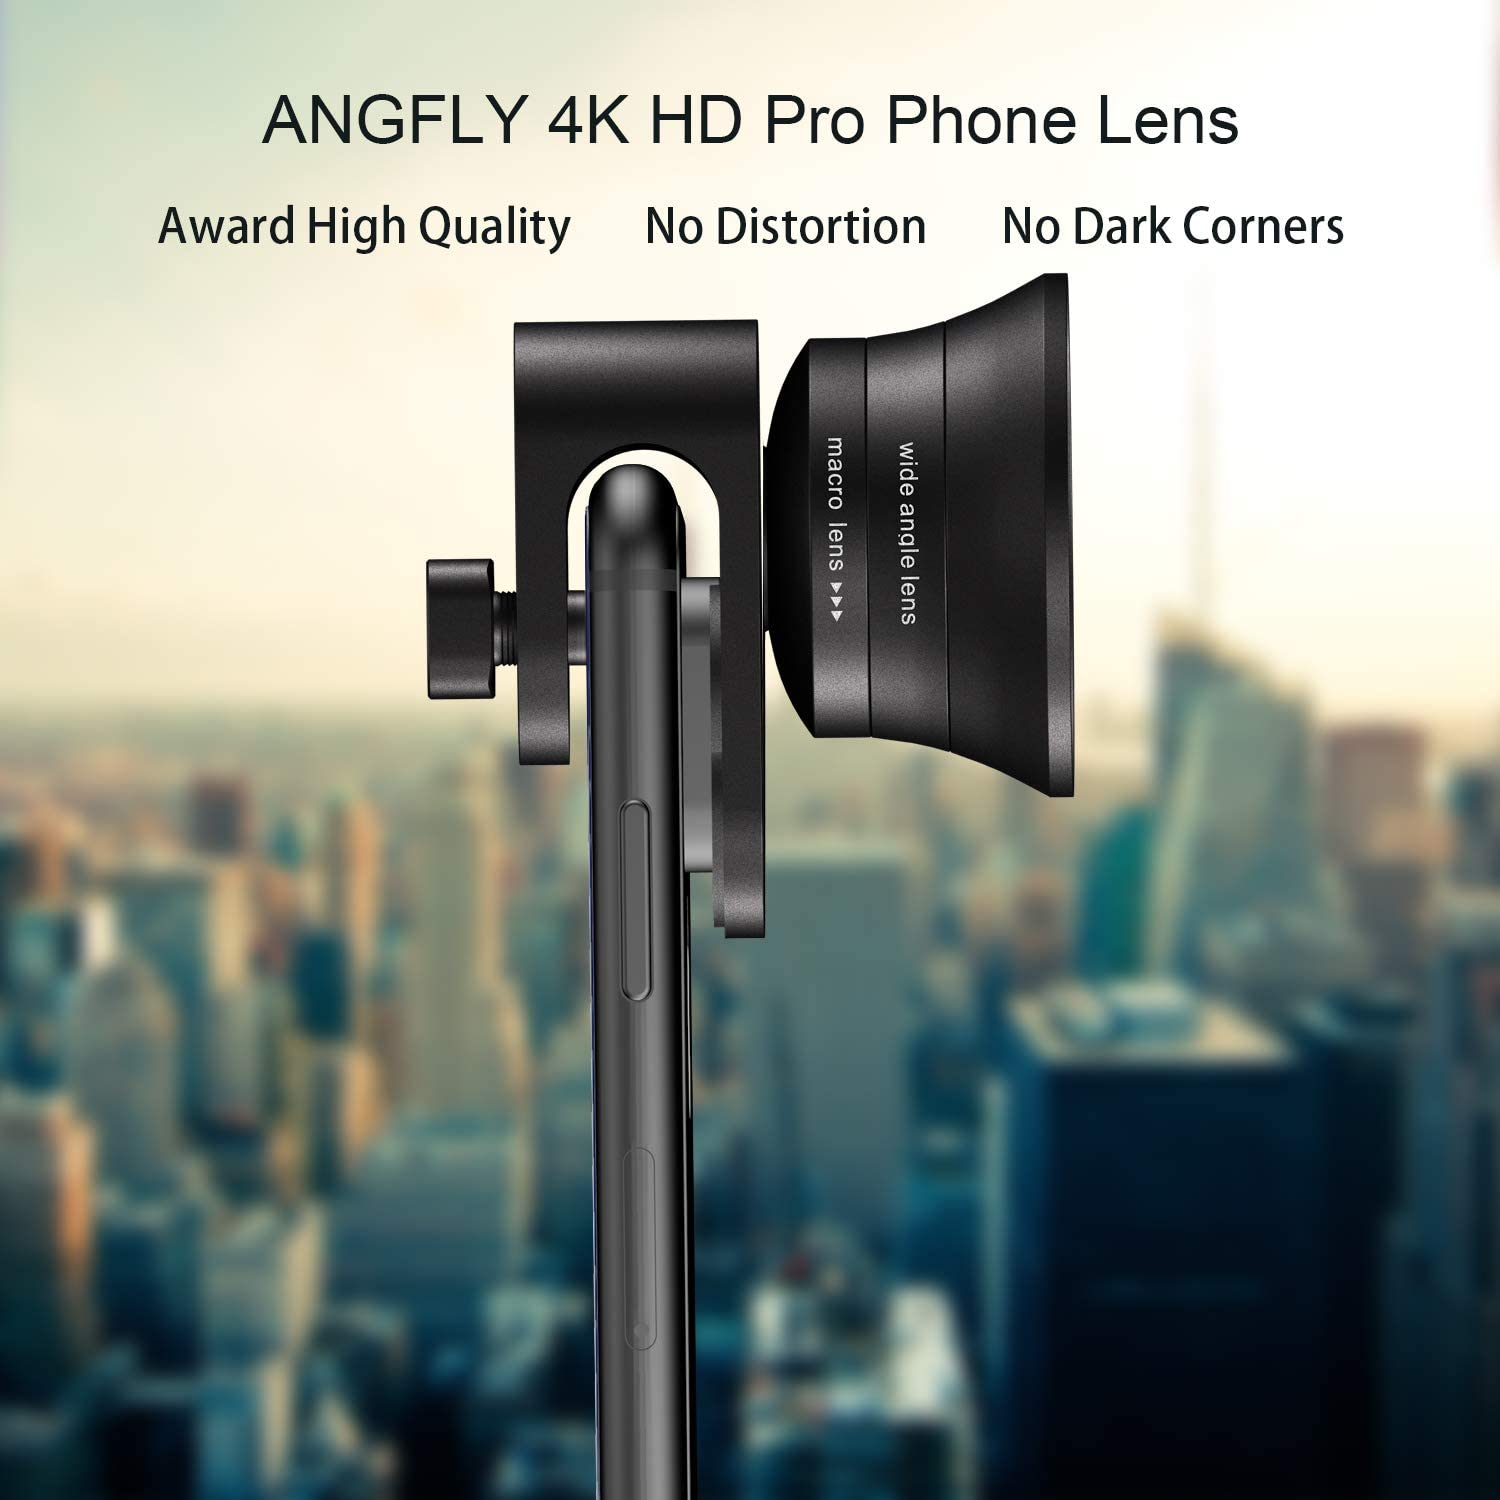 ANGFLY 4K HD 2 in 1 Aspherical Wide Angle Lens /& Super Macro Lens,Clip-On Cell Phone Camera Lenses Compatible with iPhone,Android,Samsung Mobile Phones and Tablets Phone Camera Lens Pro